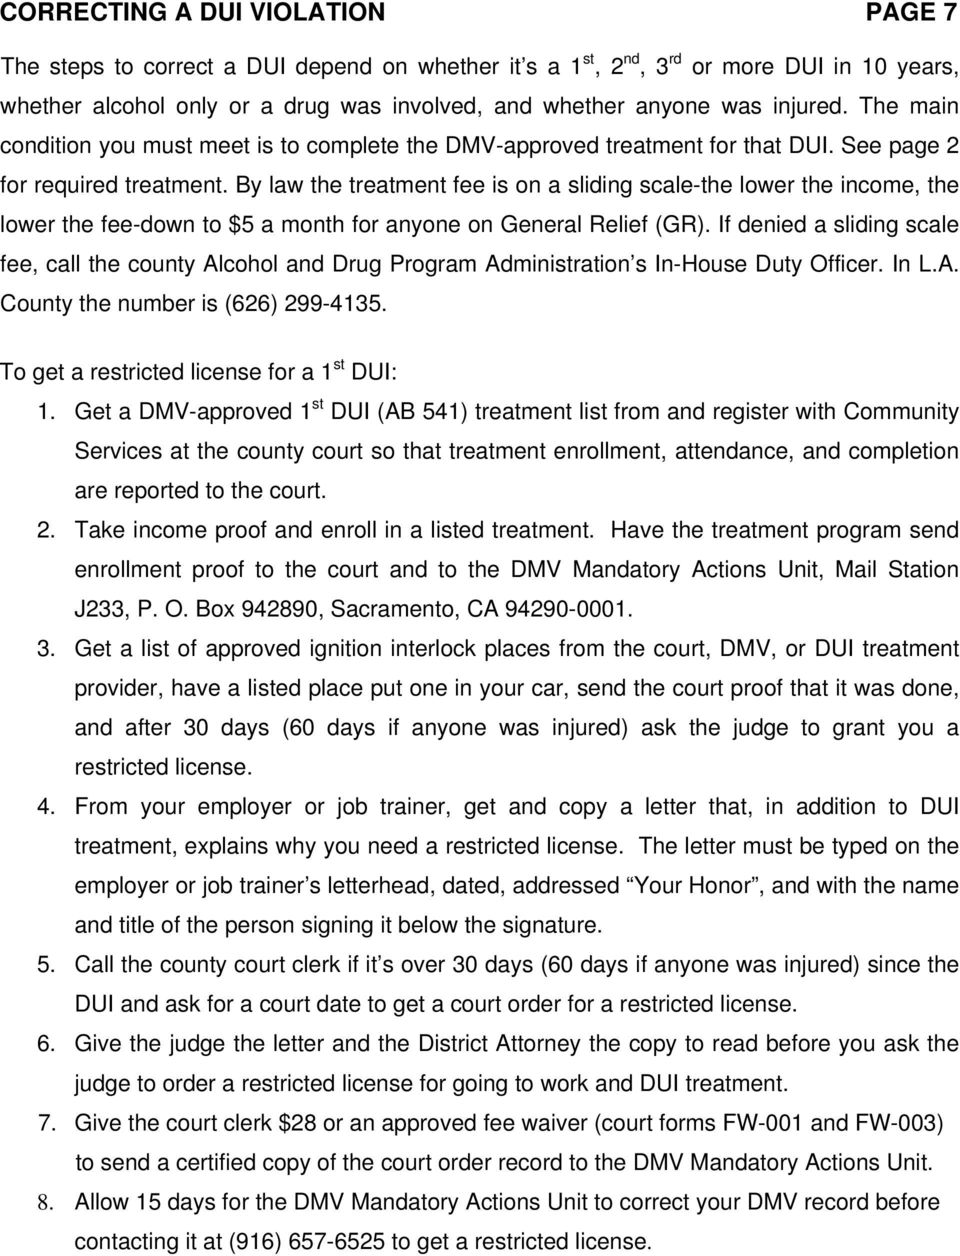 By law the treatment fee is on a sliding scale-the lower the income,